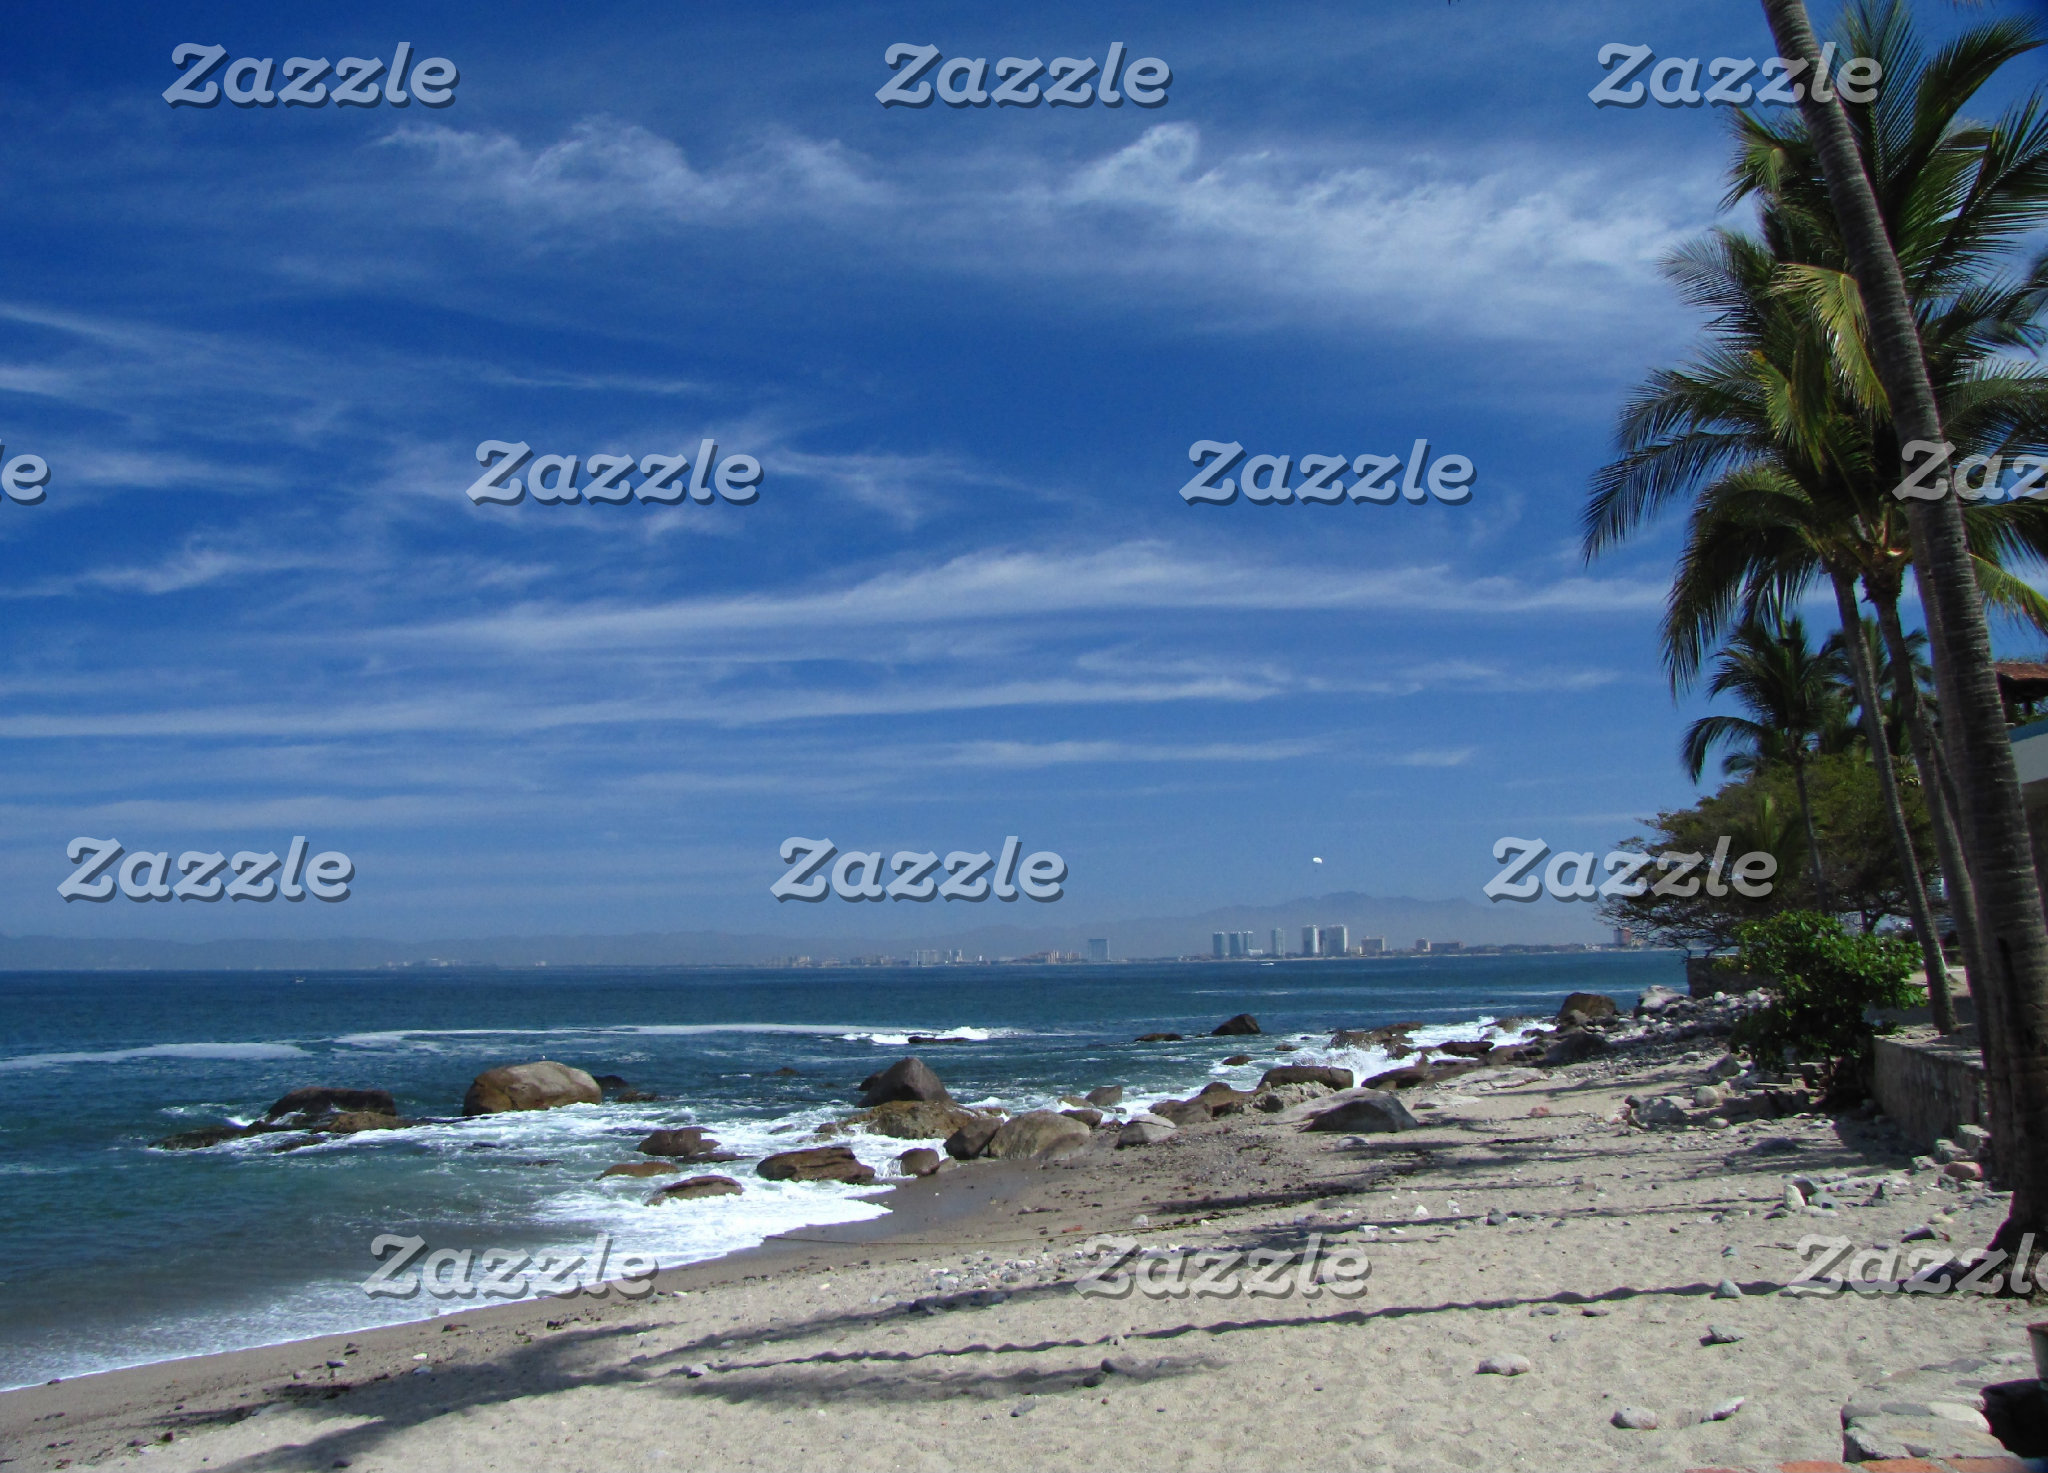 Beach and Shore Images